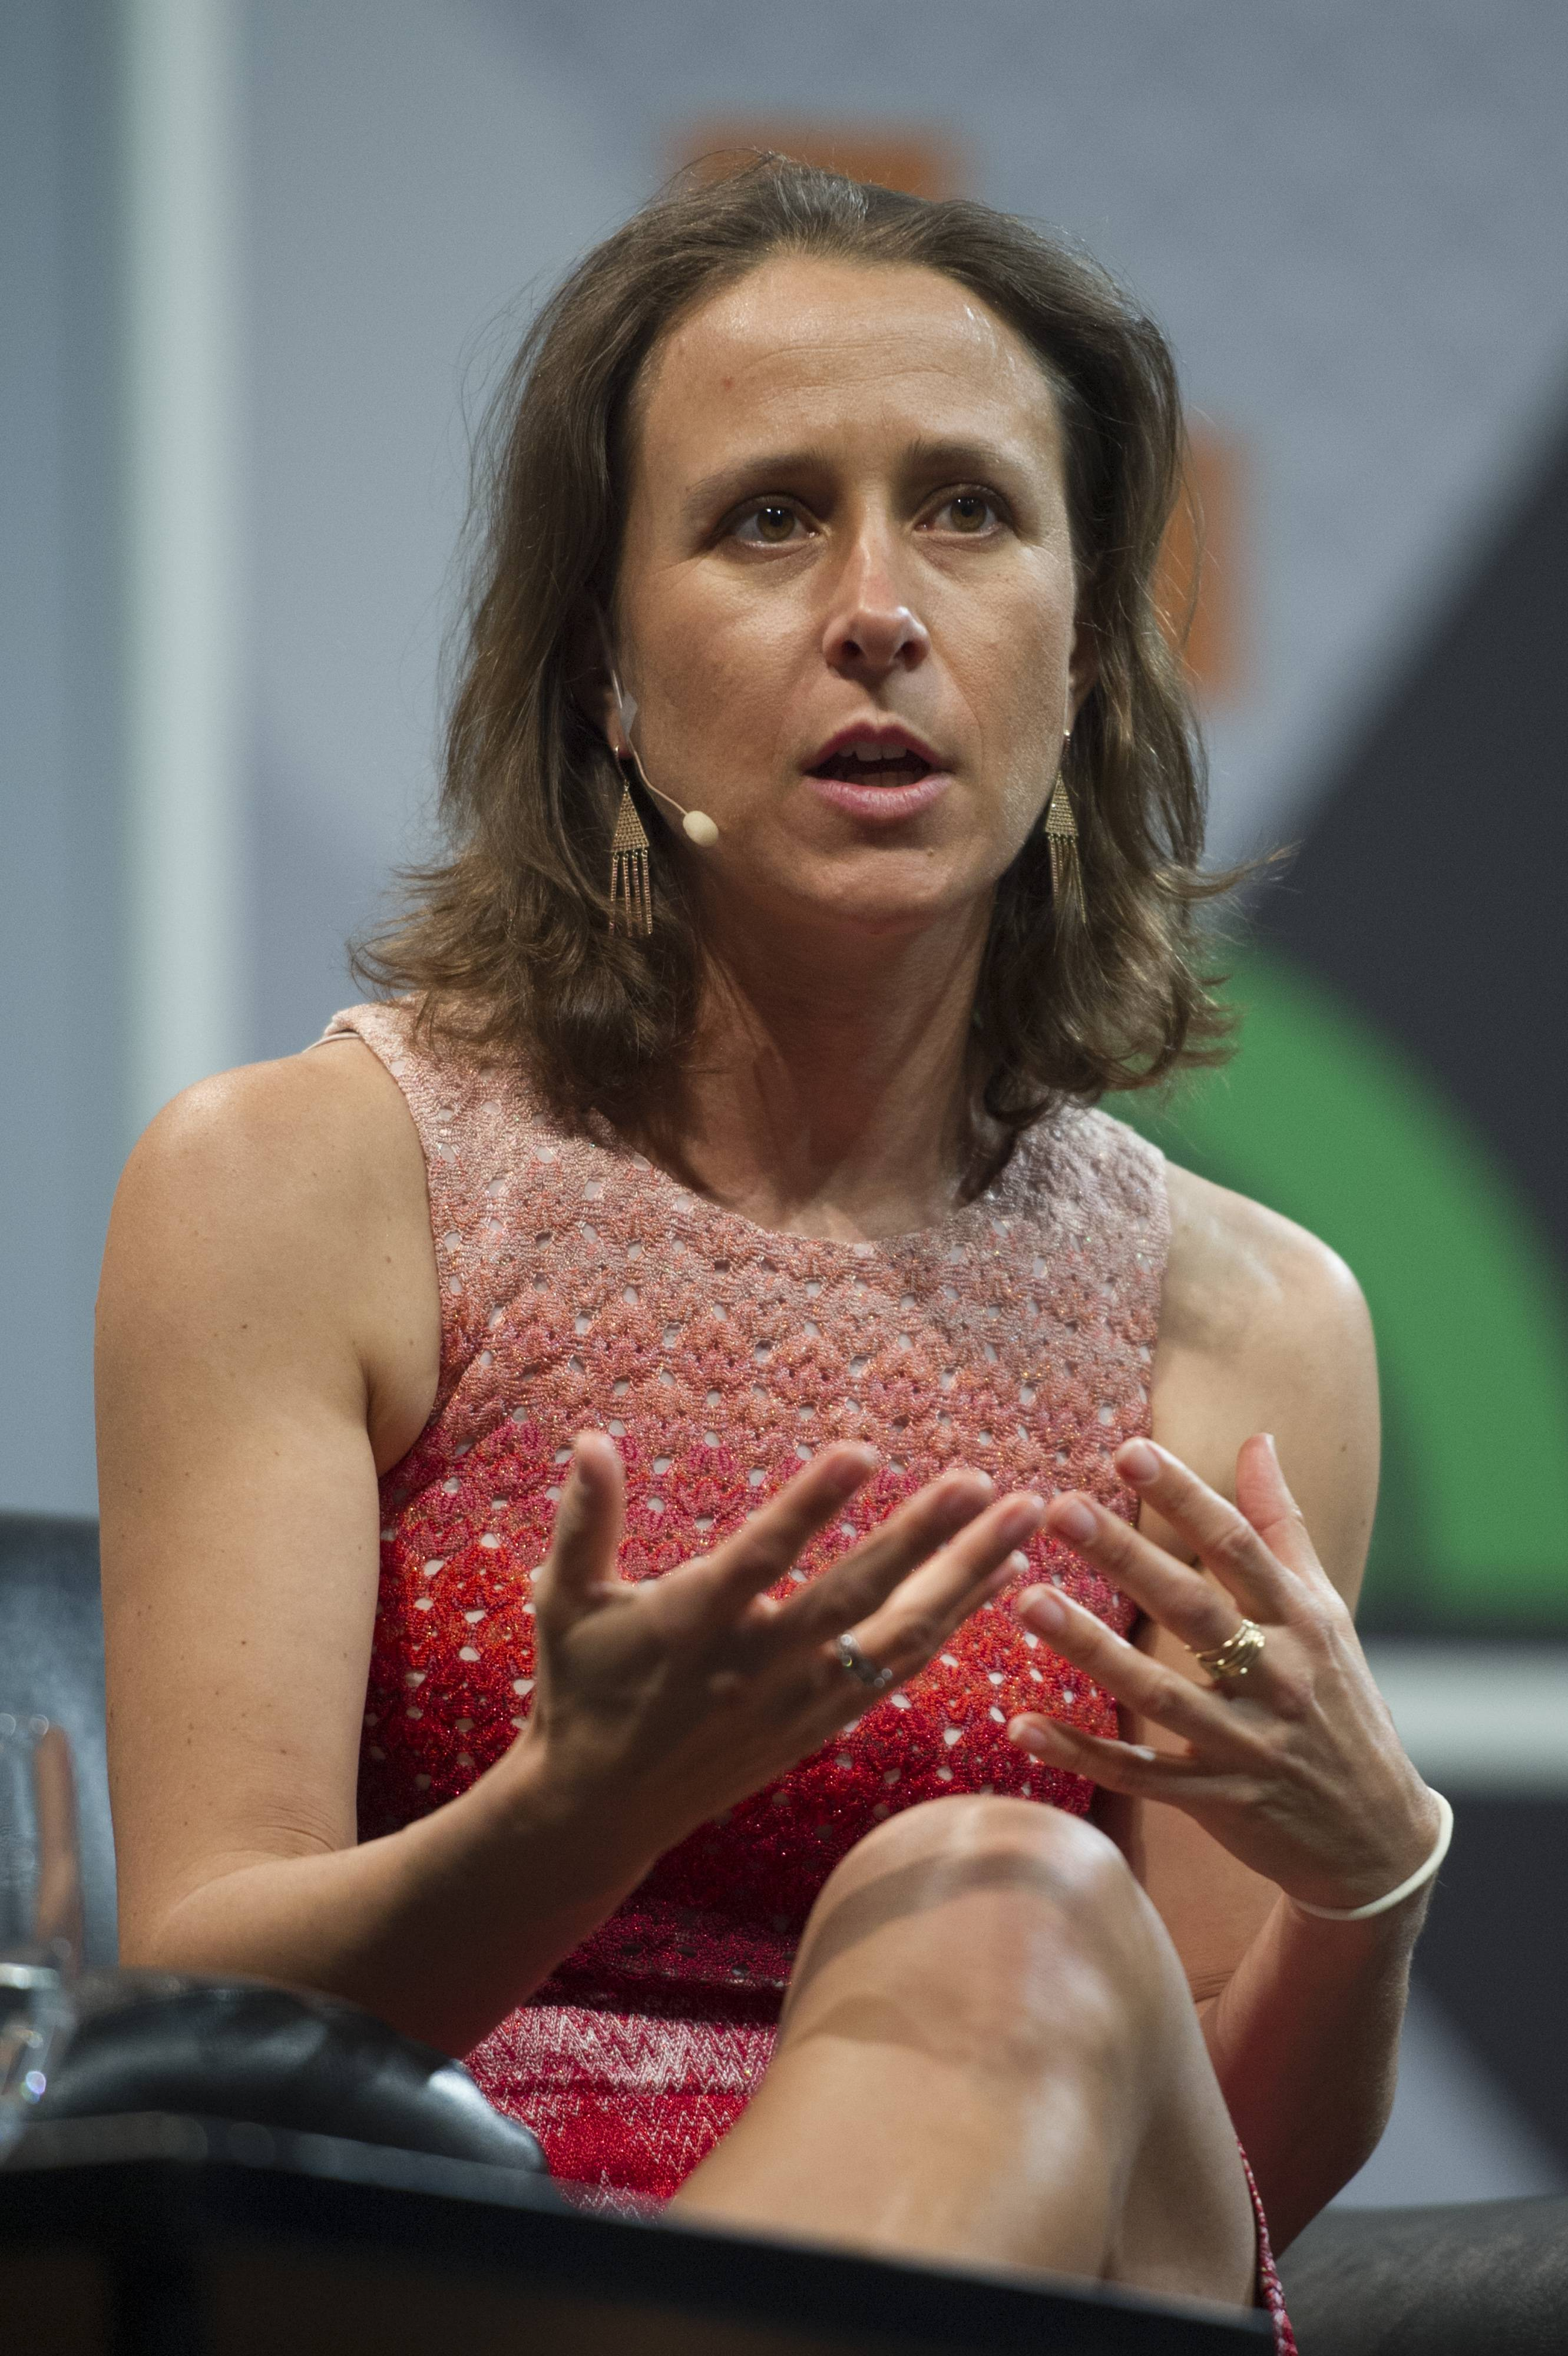 Anne Wojcicki, co-founder and chief executive officer of 23andMe, speaks during a keynote session at the South By Southwest (SXSW) Interactive Festival in Austin, Texas, U.S., on Sunday, March 9, 2014. The SXSW conferences and festivals converge original music, independent films, and emerging technologies while fostering creative and professional growth.